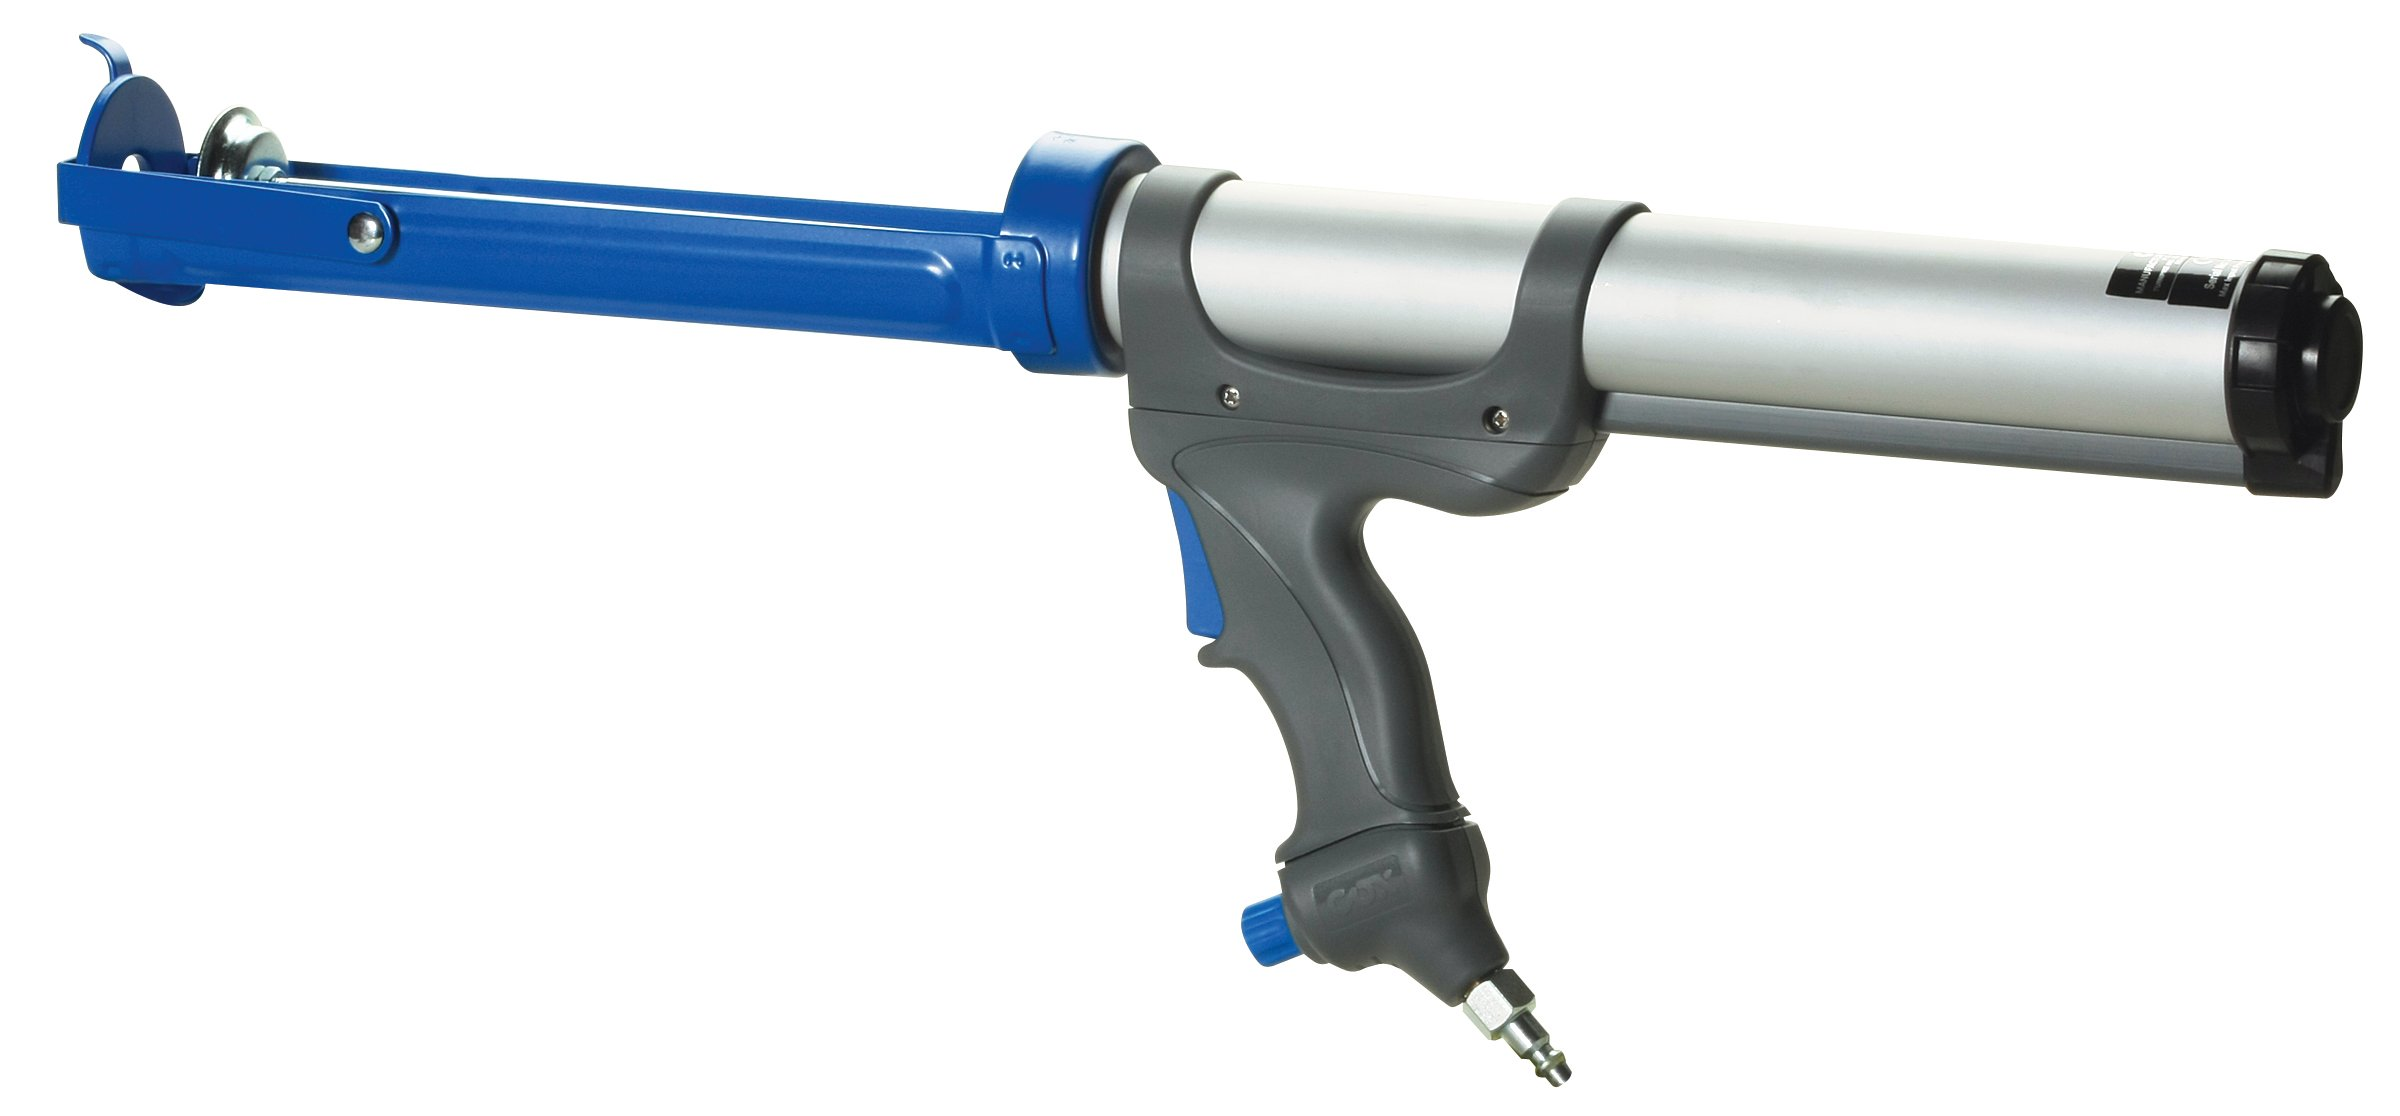 COX 63002 Berkshire 29-Ounce Cartridge Pneumatic Caulk Gun